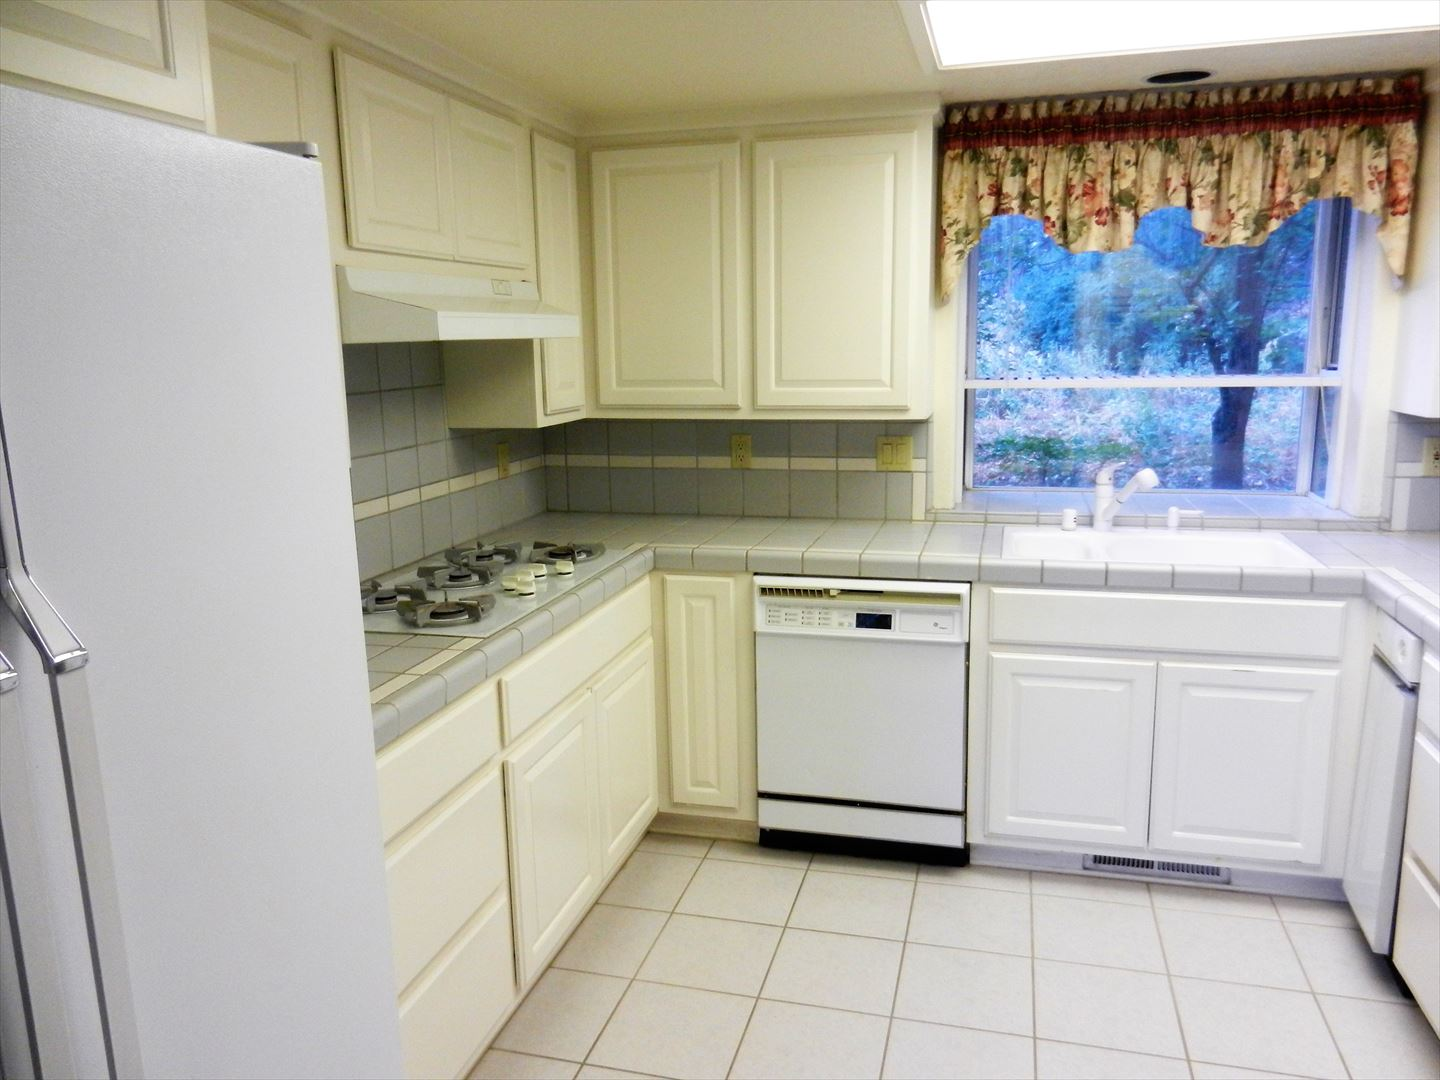 This cheerful kitchen is fully stocked with all desired amenities!